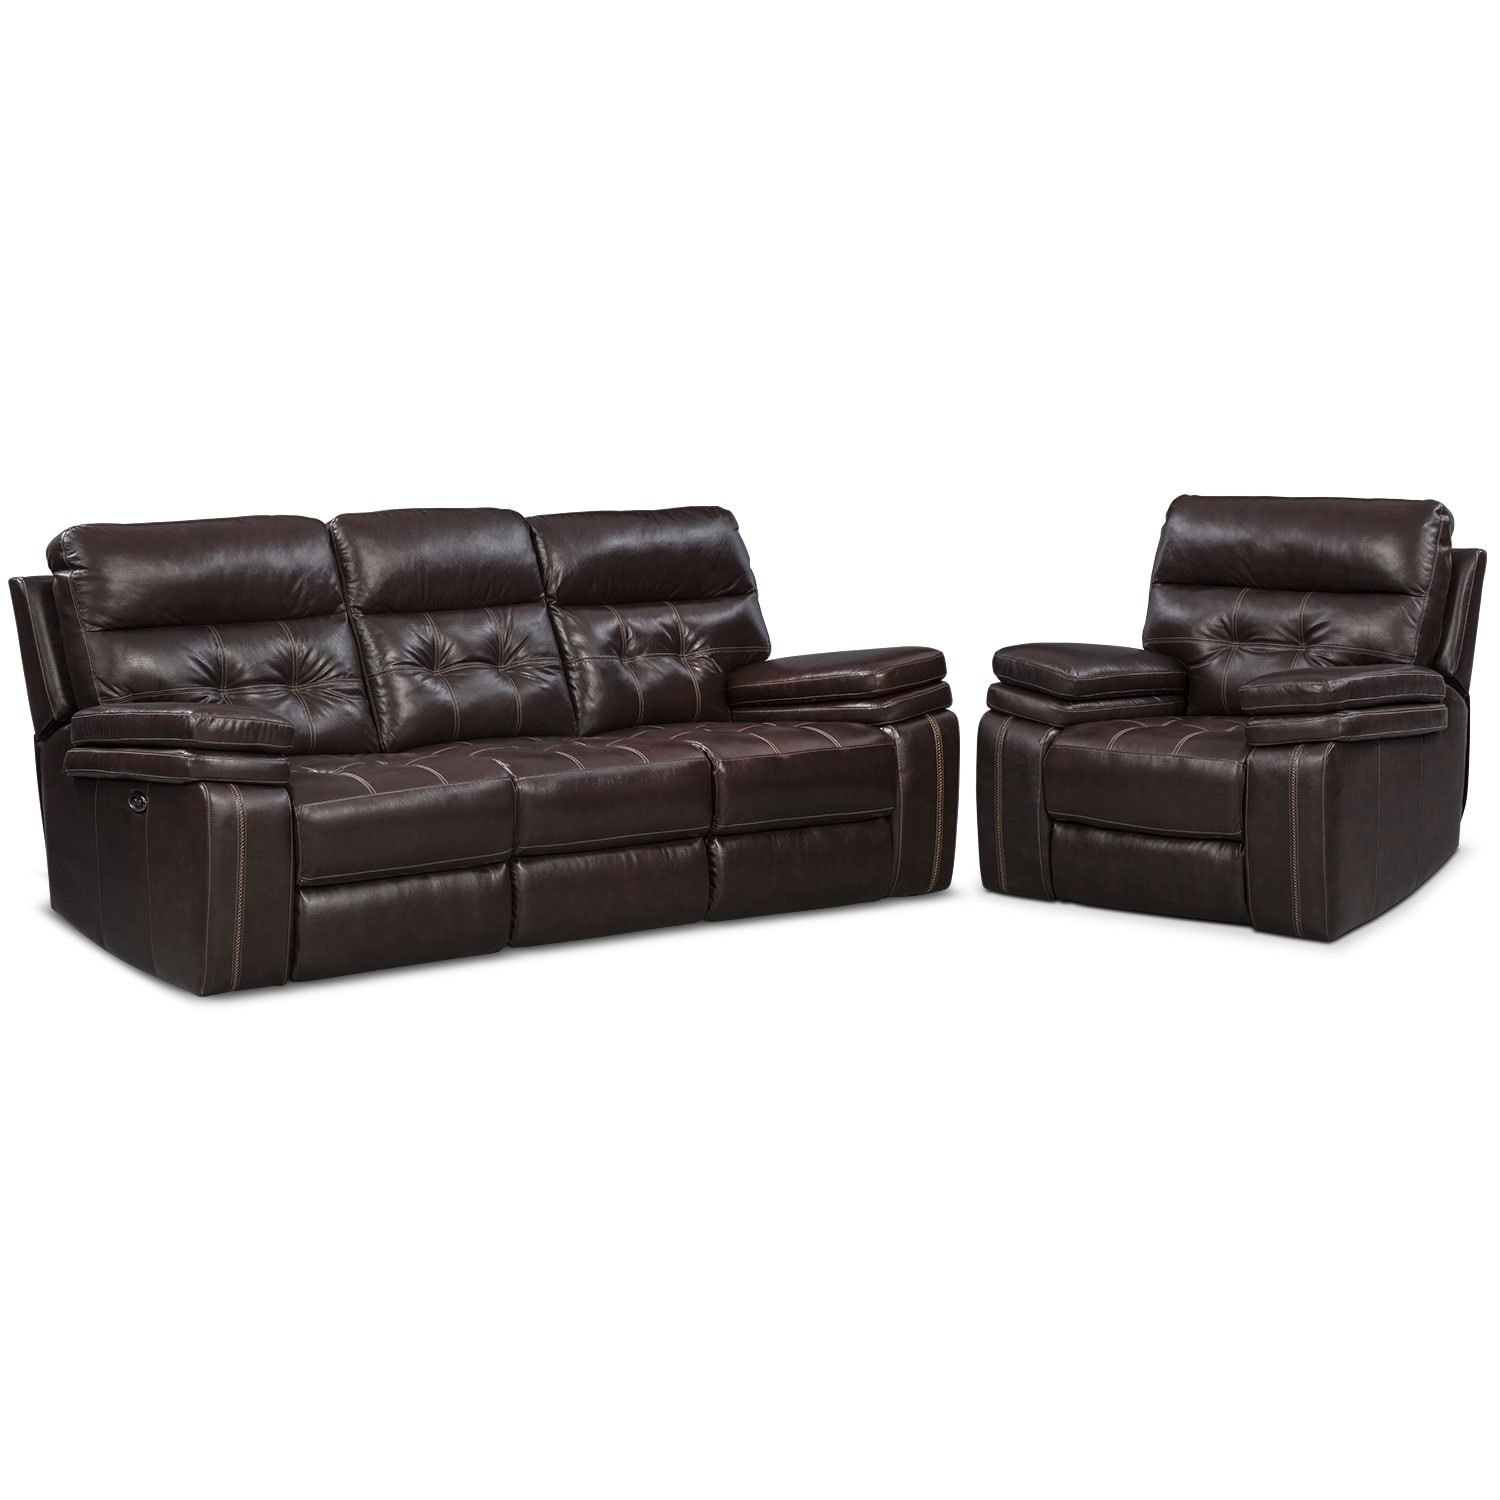 Living Room Furniture - Brisco Power Reclining Sofa and Glider Recliner Set